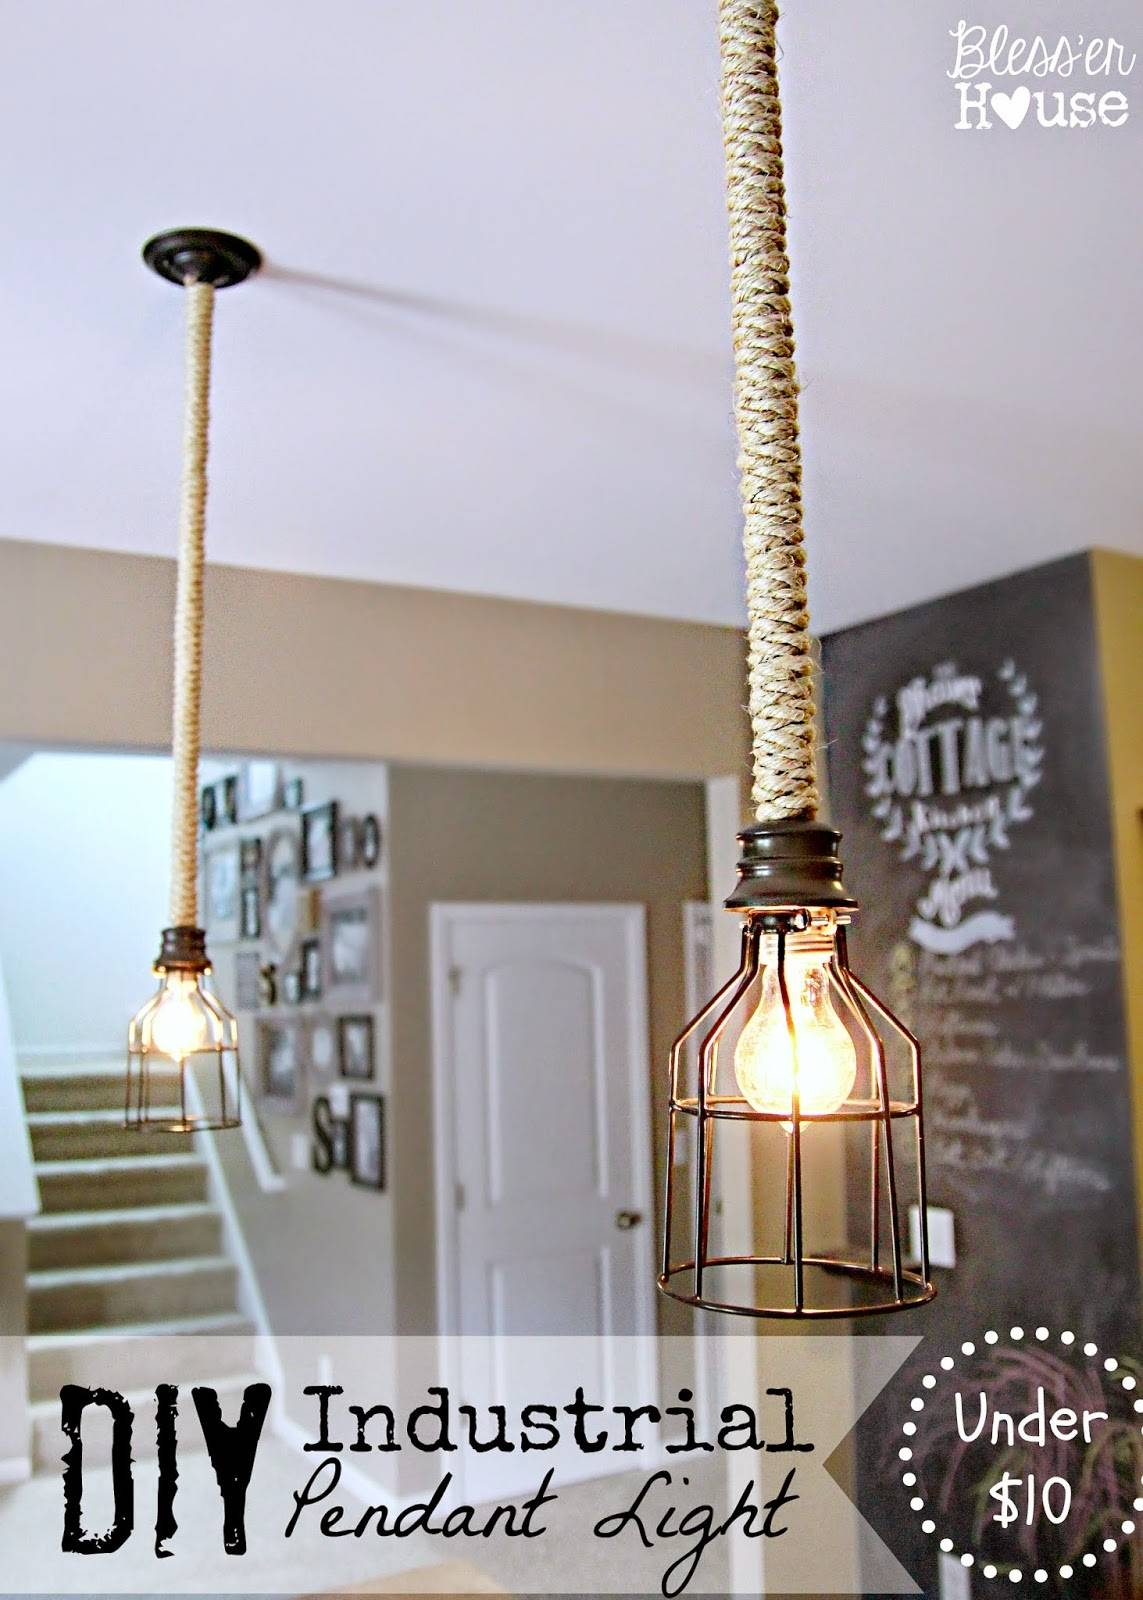 5 Diy Industrial Light Fixtures For Under $25 – Bless'er House For Chicken Wire Pendant Lights (View 3 of 15)